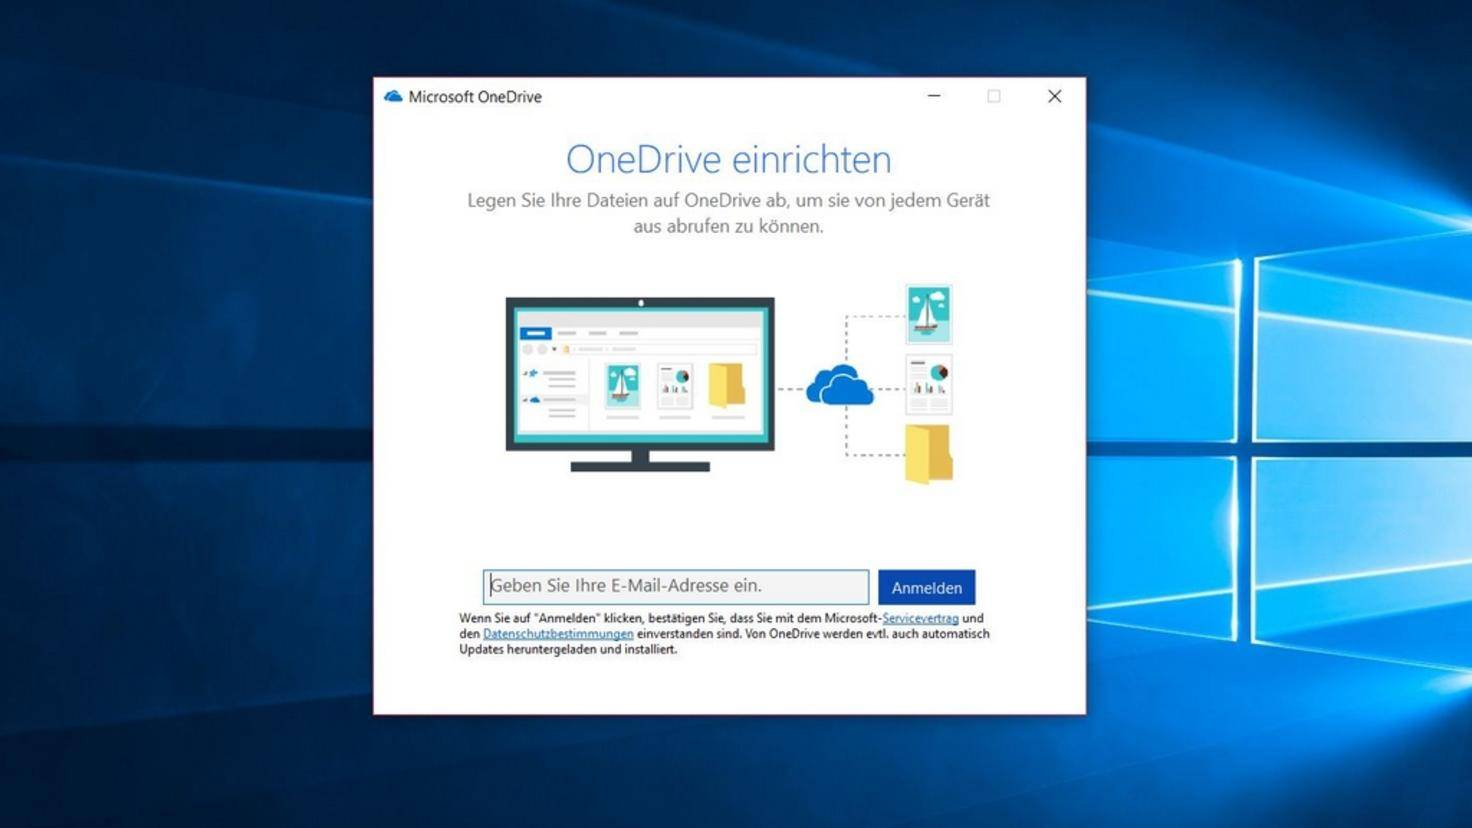 OneDrive-einrichten-Windows-10-01